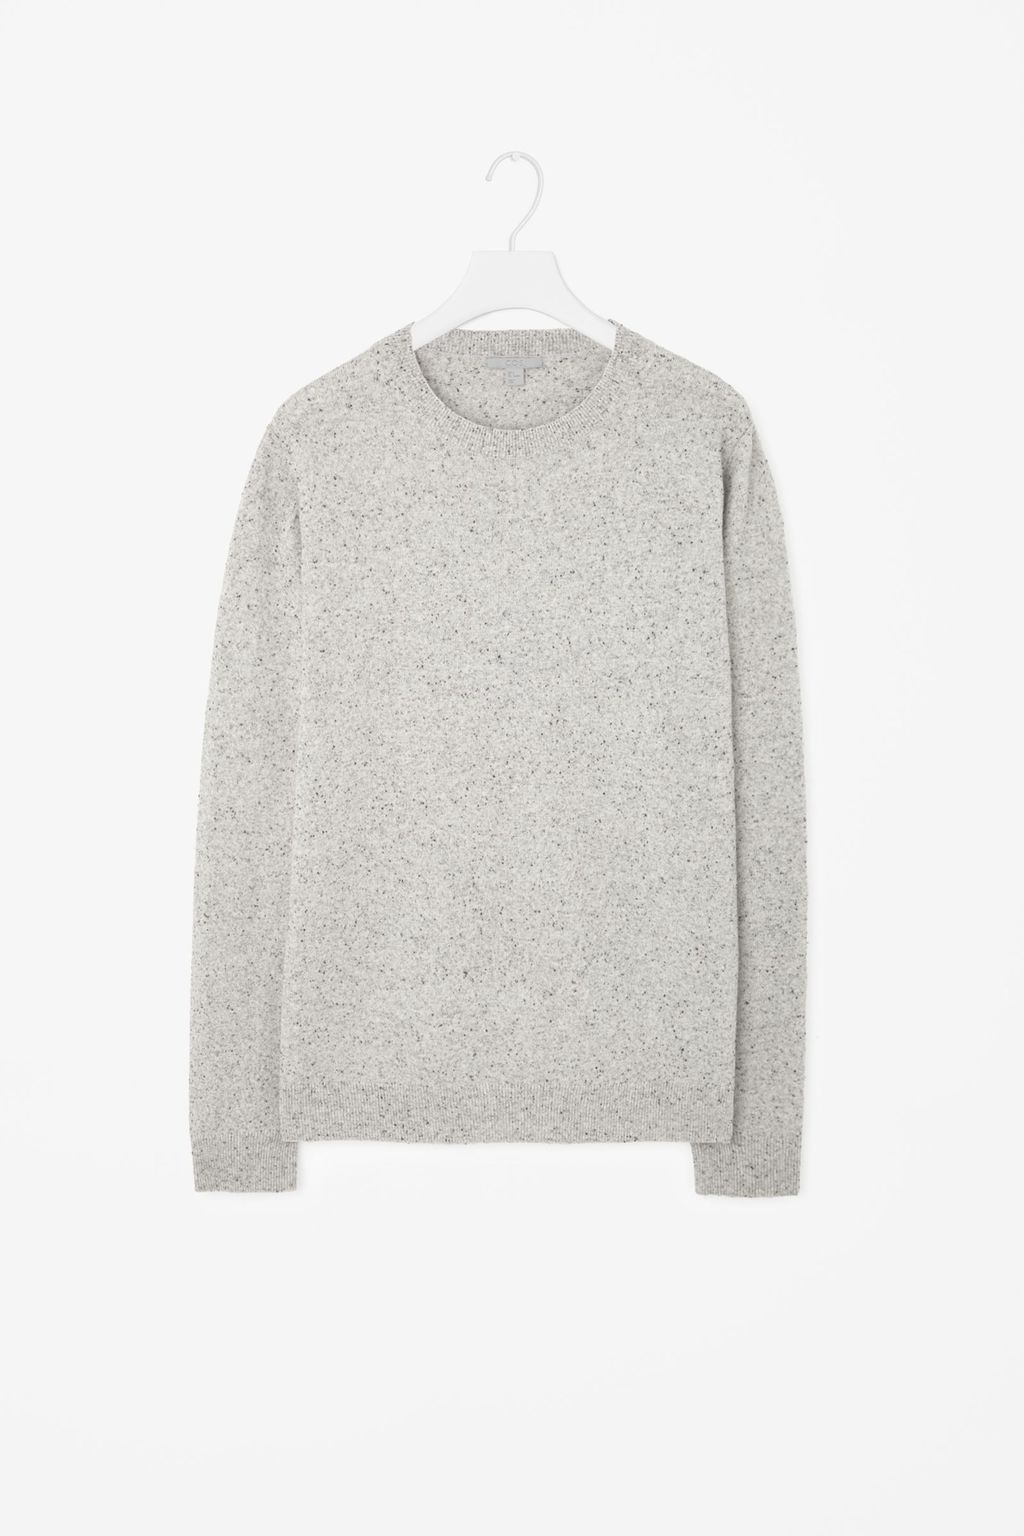 Speckled Knit Jumper - pattern: plain; length: below the bottom; style: standard; predominant colour: light grey; occasions: casual, creative work; fibres: wool - 100%; fit: loose; neckline: crew; sleeve length: long sleeve; sleeve style: standard; texture group: knits/crochet; pattern type: knitted - fine stitch; season: a/w 2015; wardrobe: basic